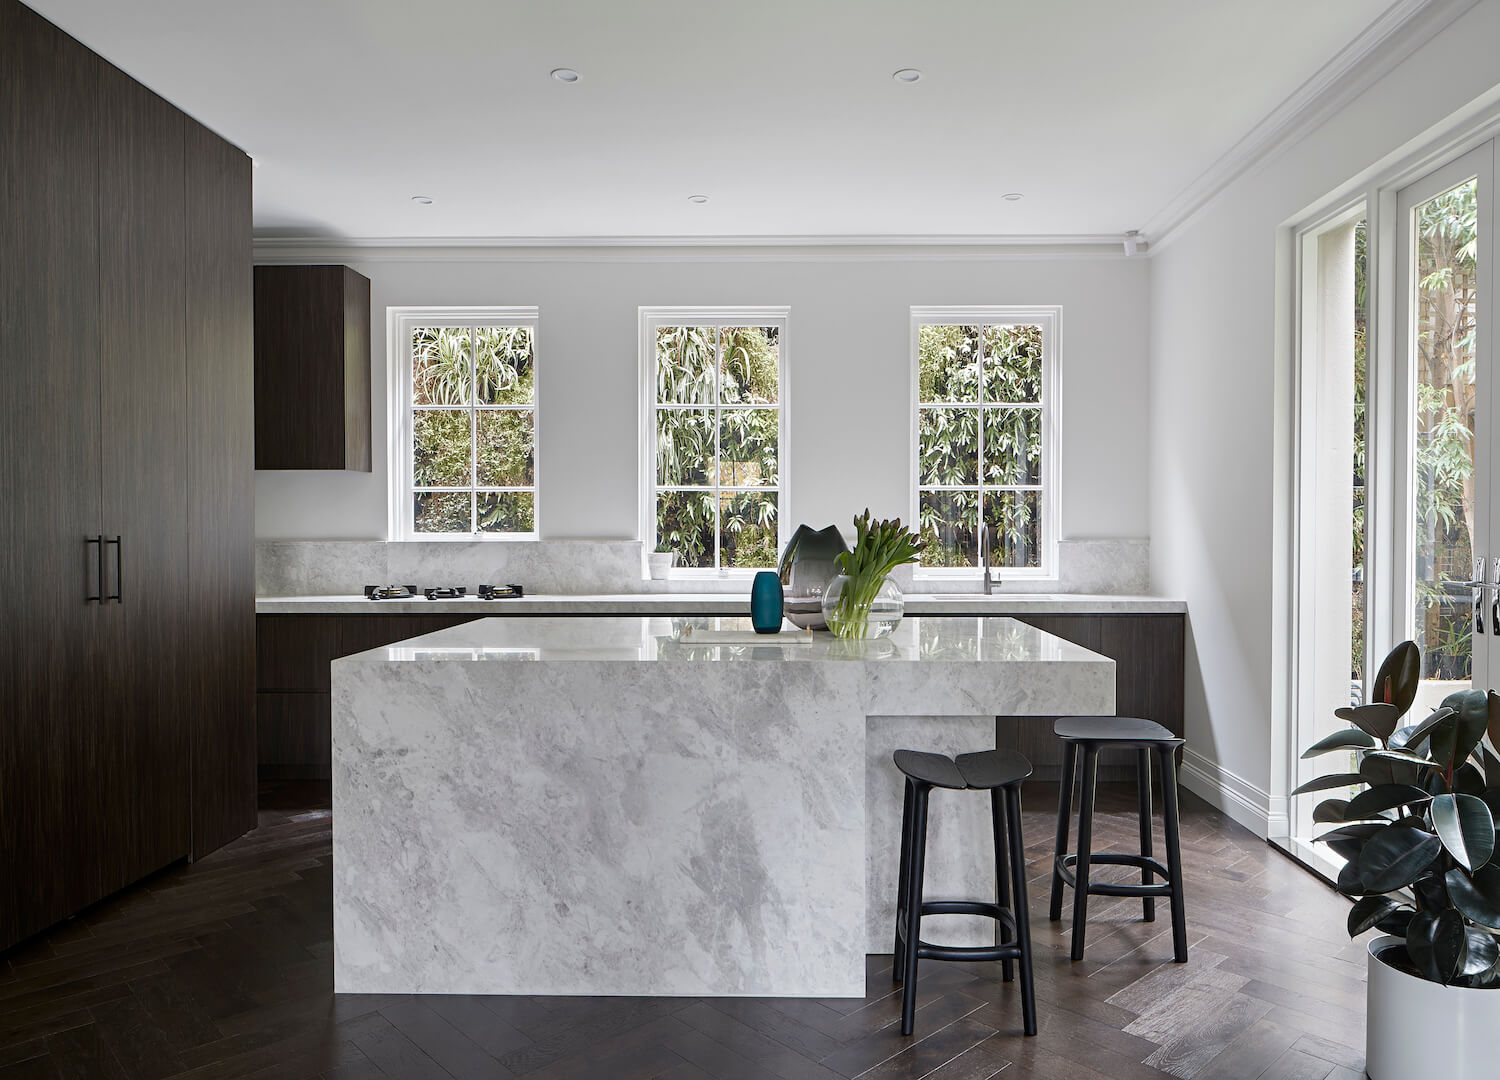 est living interiors 17 Glen Road Toorak Lauren Tarrant Design 4